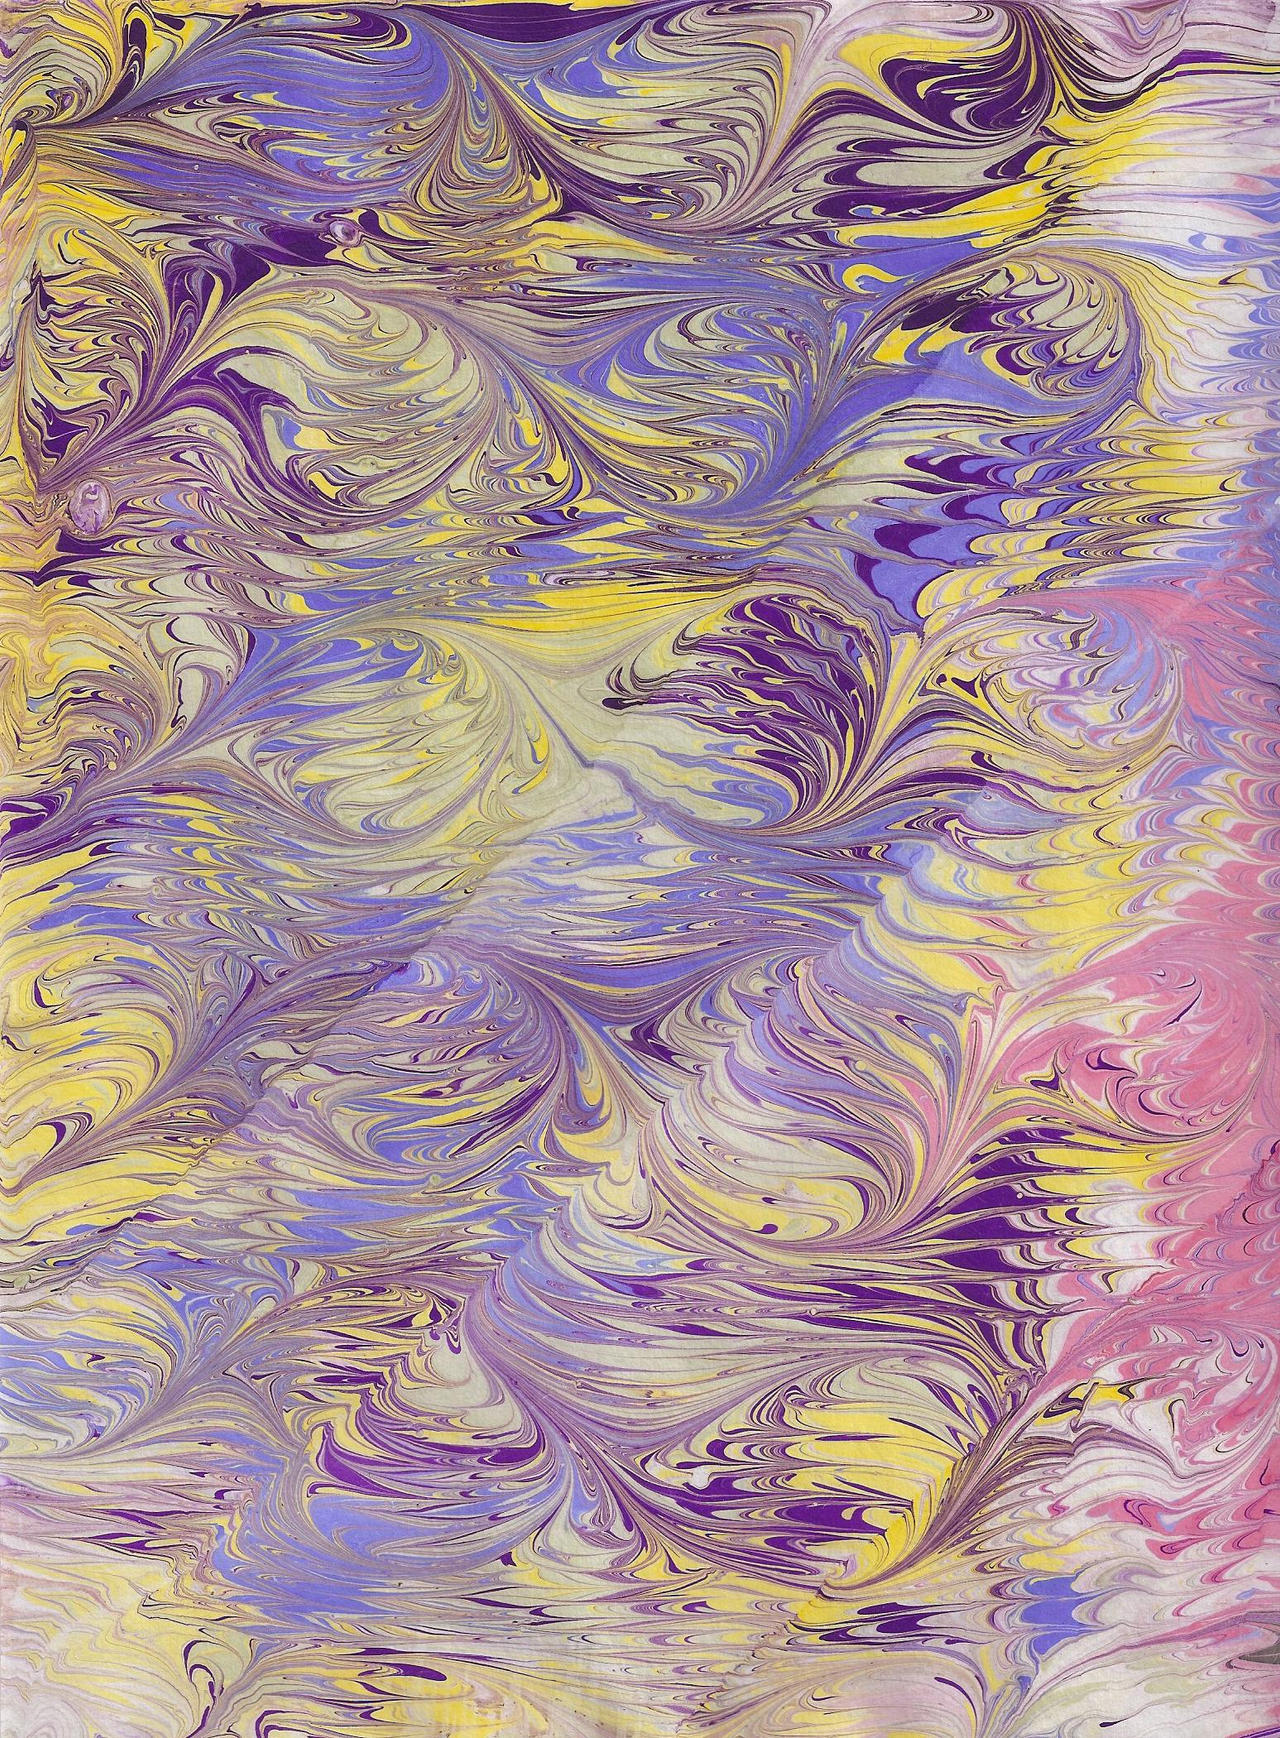 More fun with Paper Marbling by Creagan-an-Fhithich